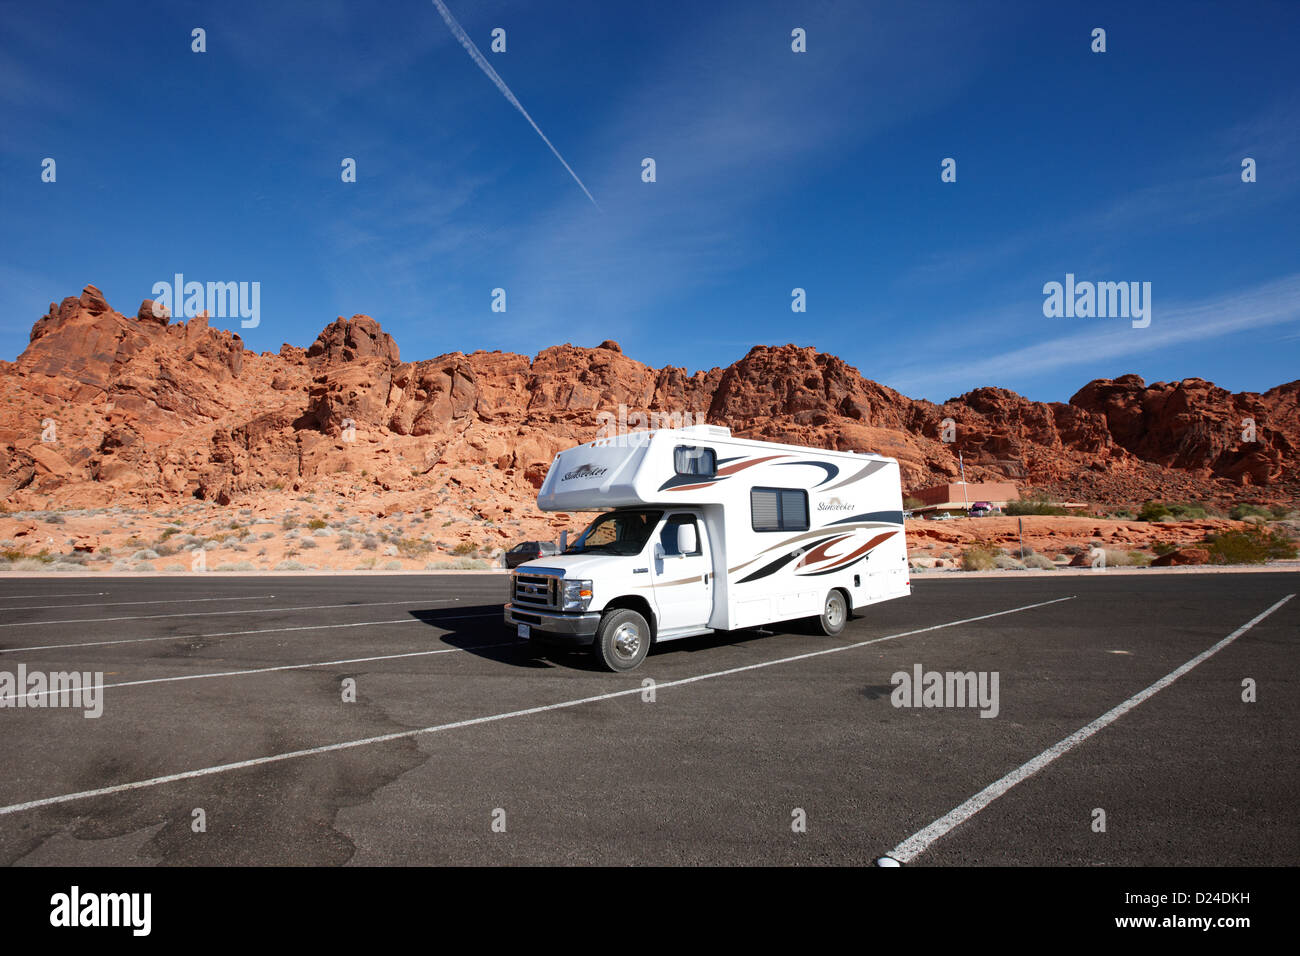 RV camping van parked at valley of fire state park nevada usa - Stock Image